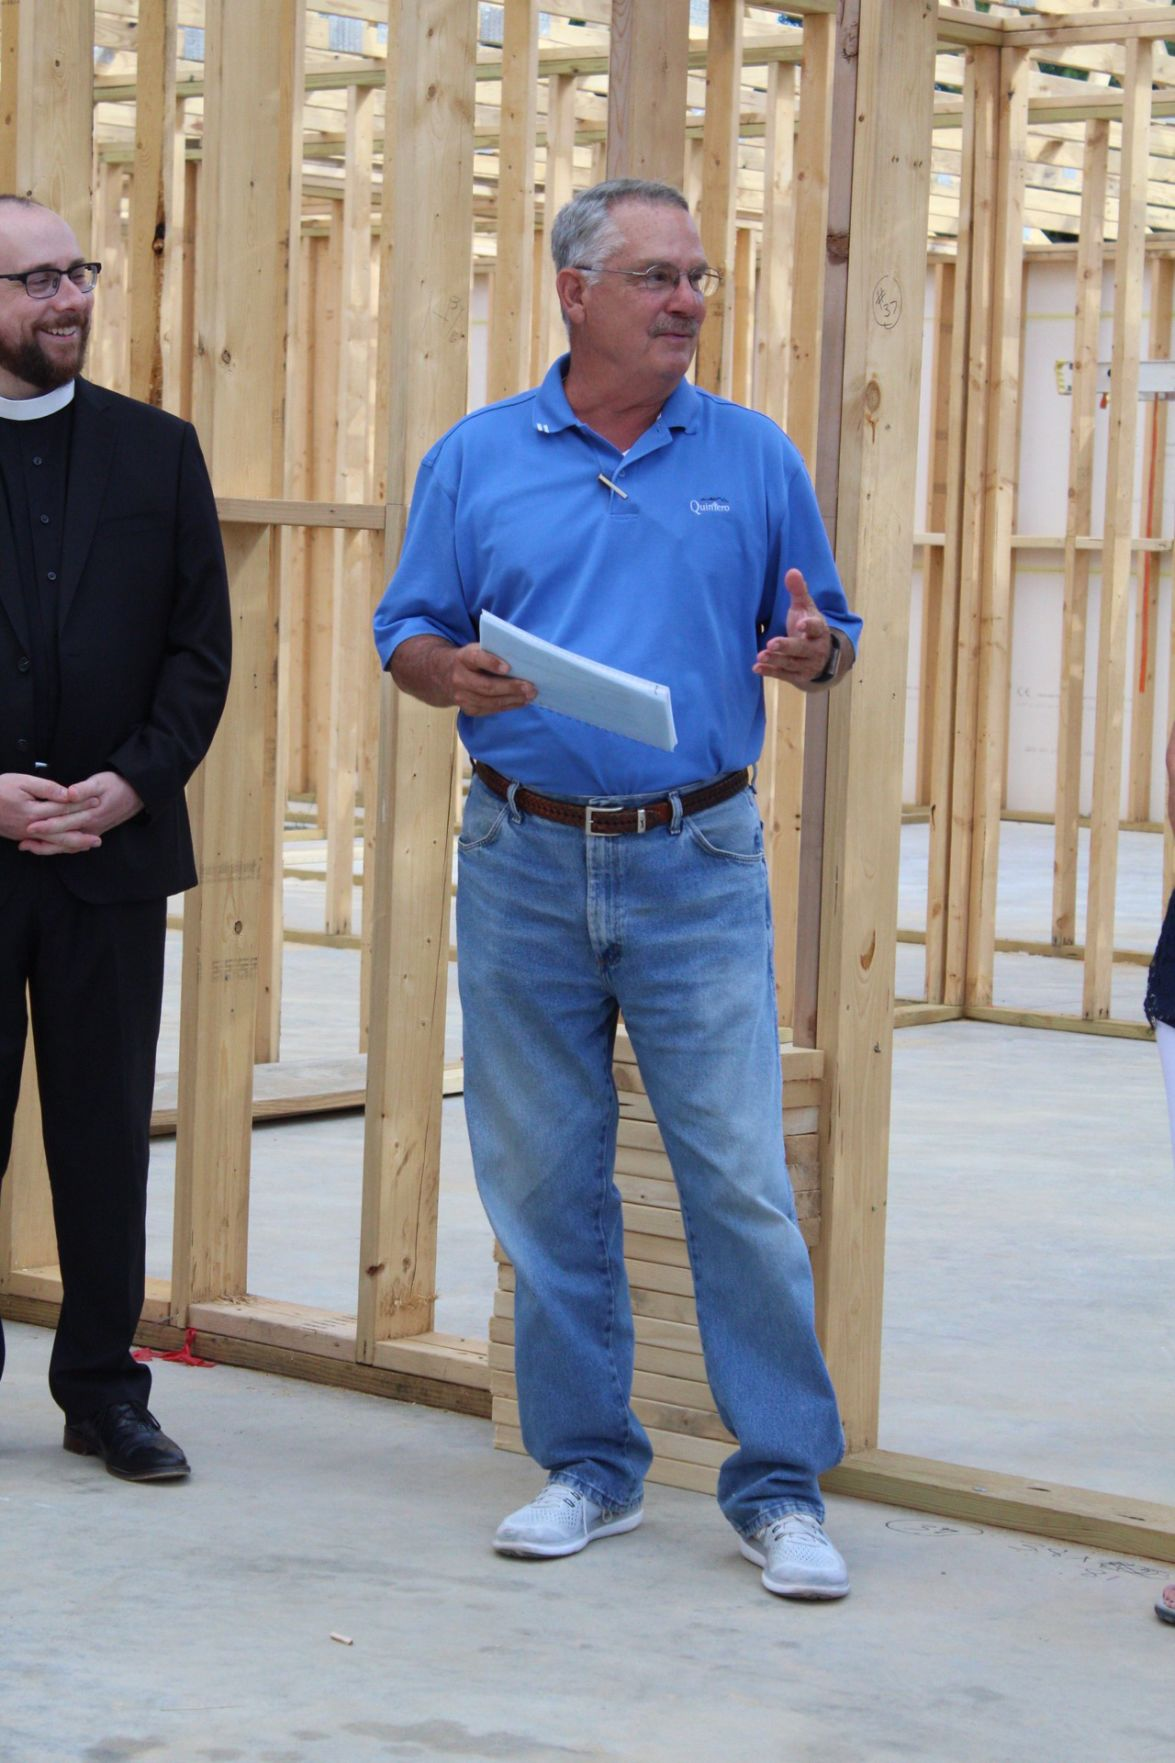 Ruth's Cottage President, Jim Laycock started the beam signing off by introducing himself and the preacher that blessed the new building.